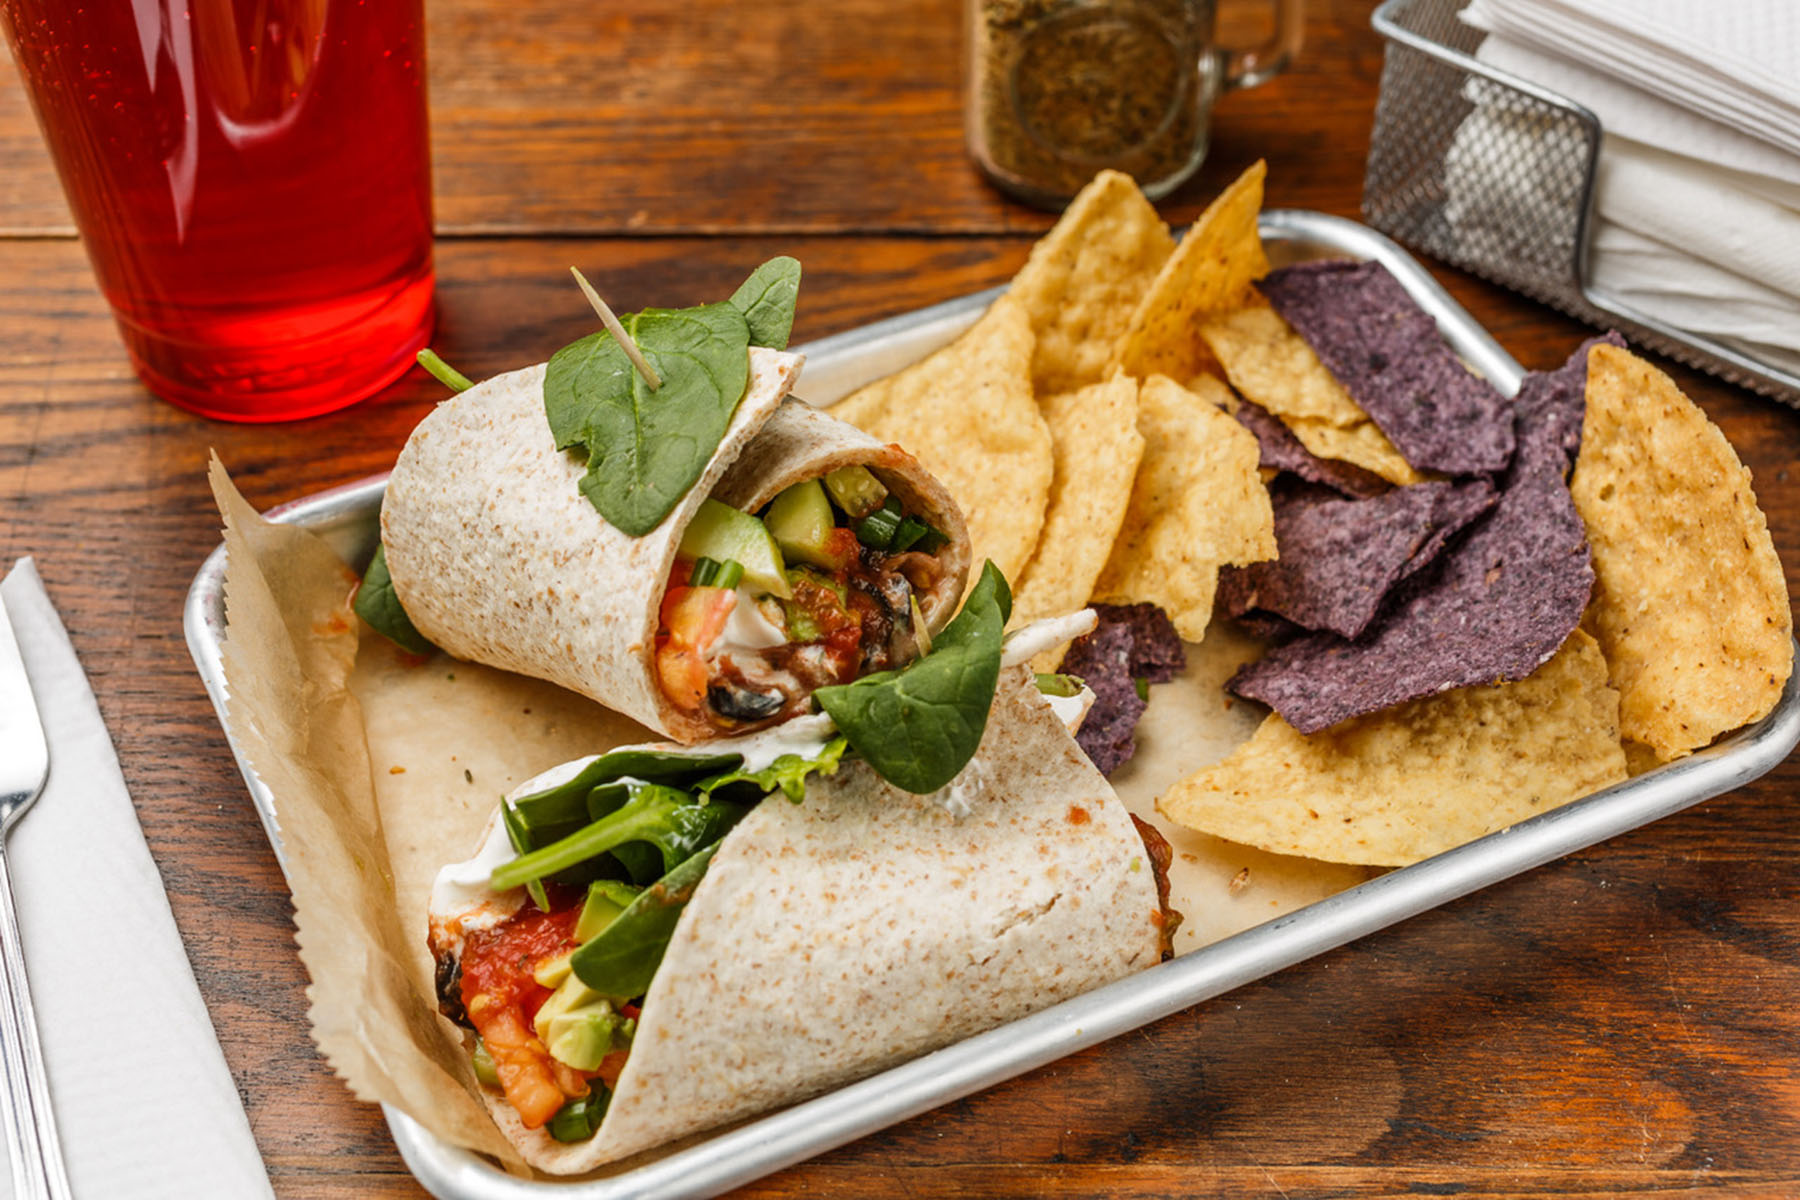 Veggie Burrito  Organic whole wheat tortilla, avocado, tomato, green onions, jalapeño, cucumber, black olives, sour cream, salsa, and spinach or sprouts. Served with organic tortilla chips.   $6.49